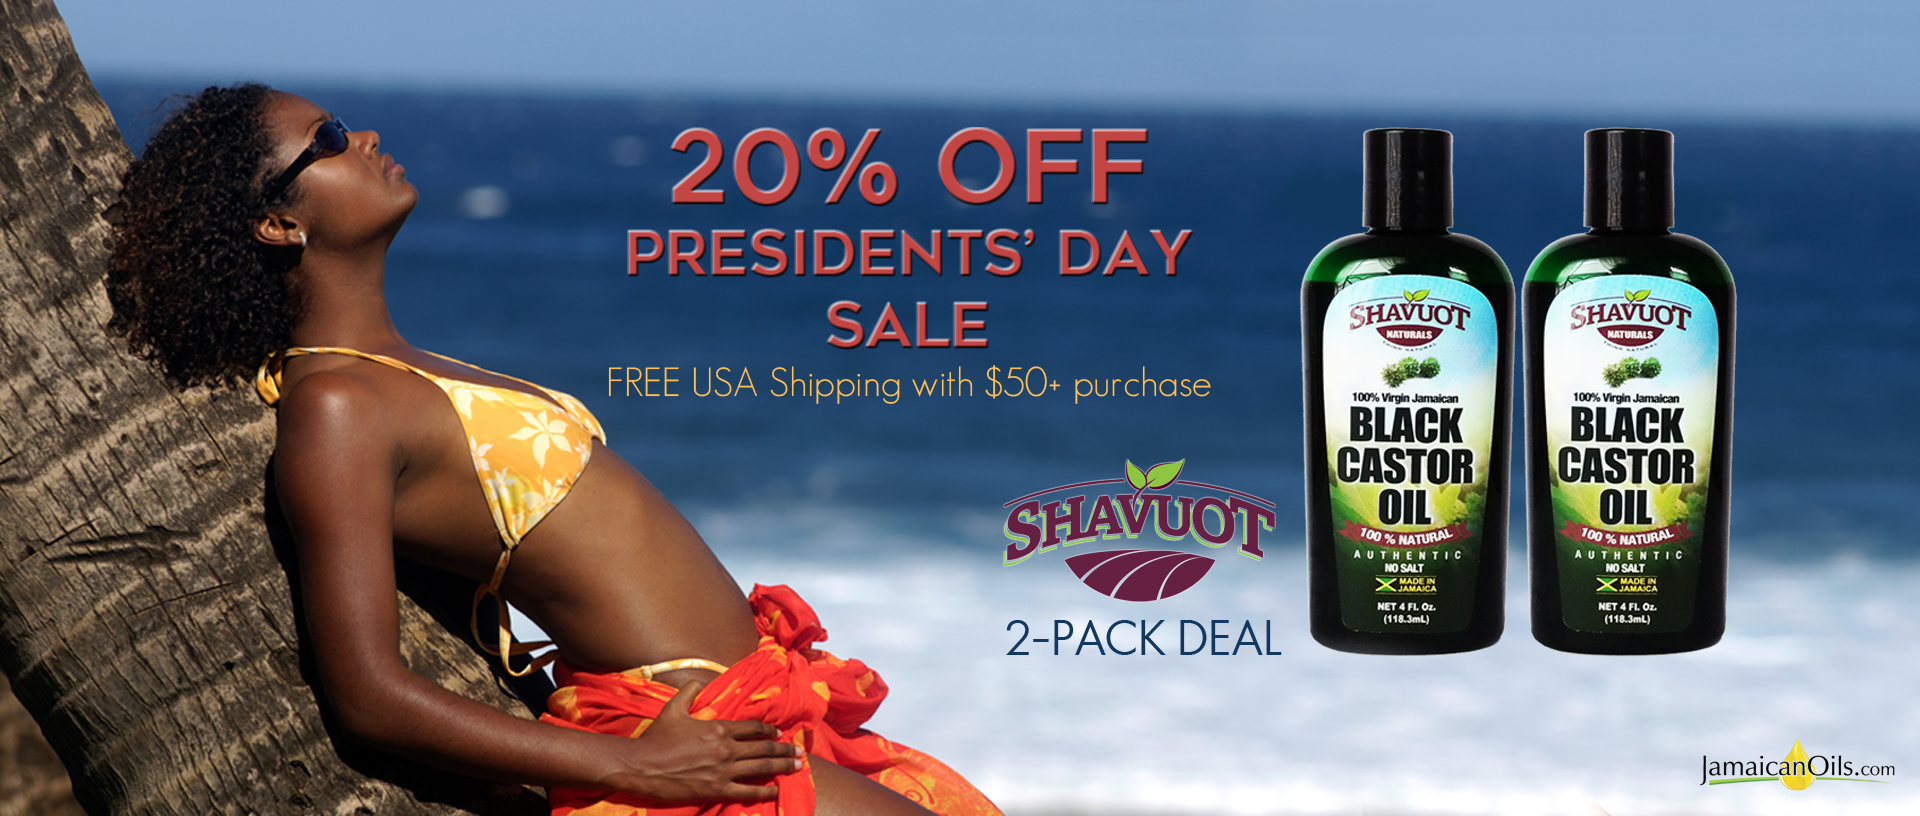 20% OFF Presidents' Day Sale